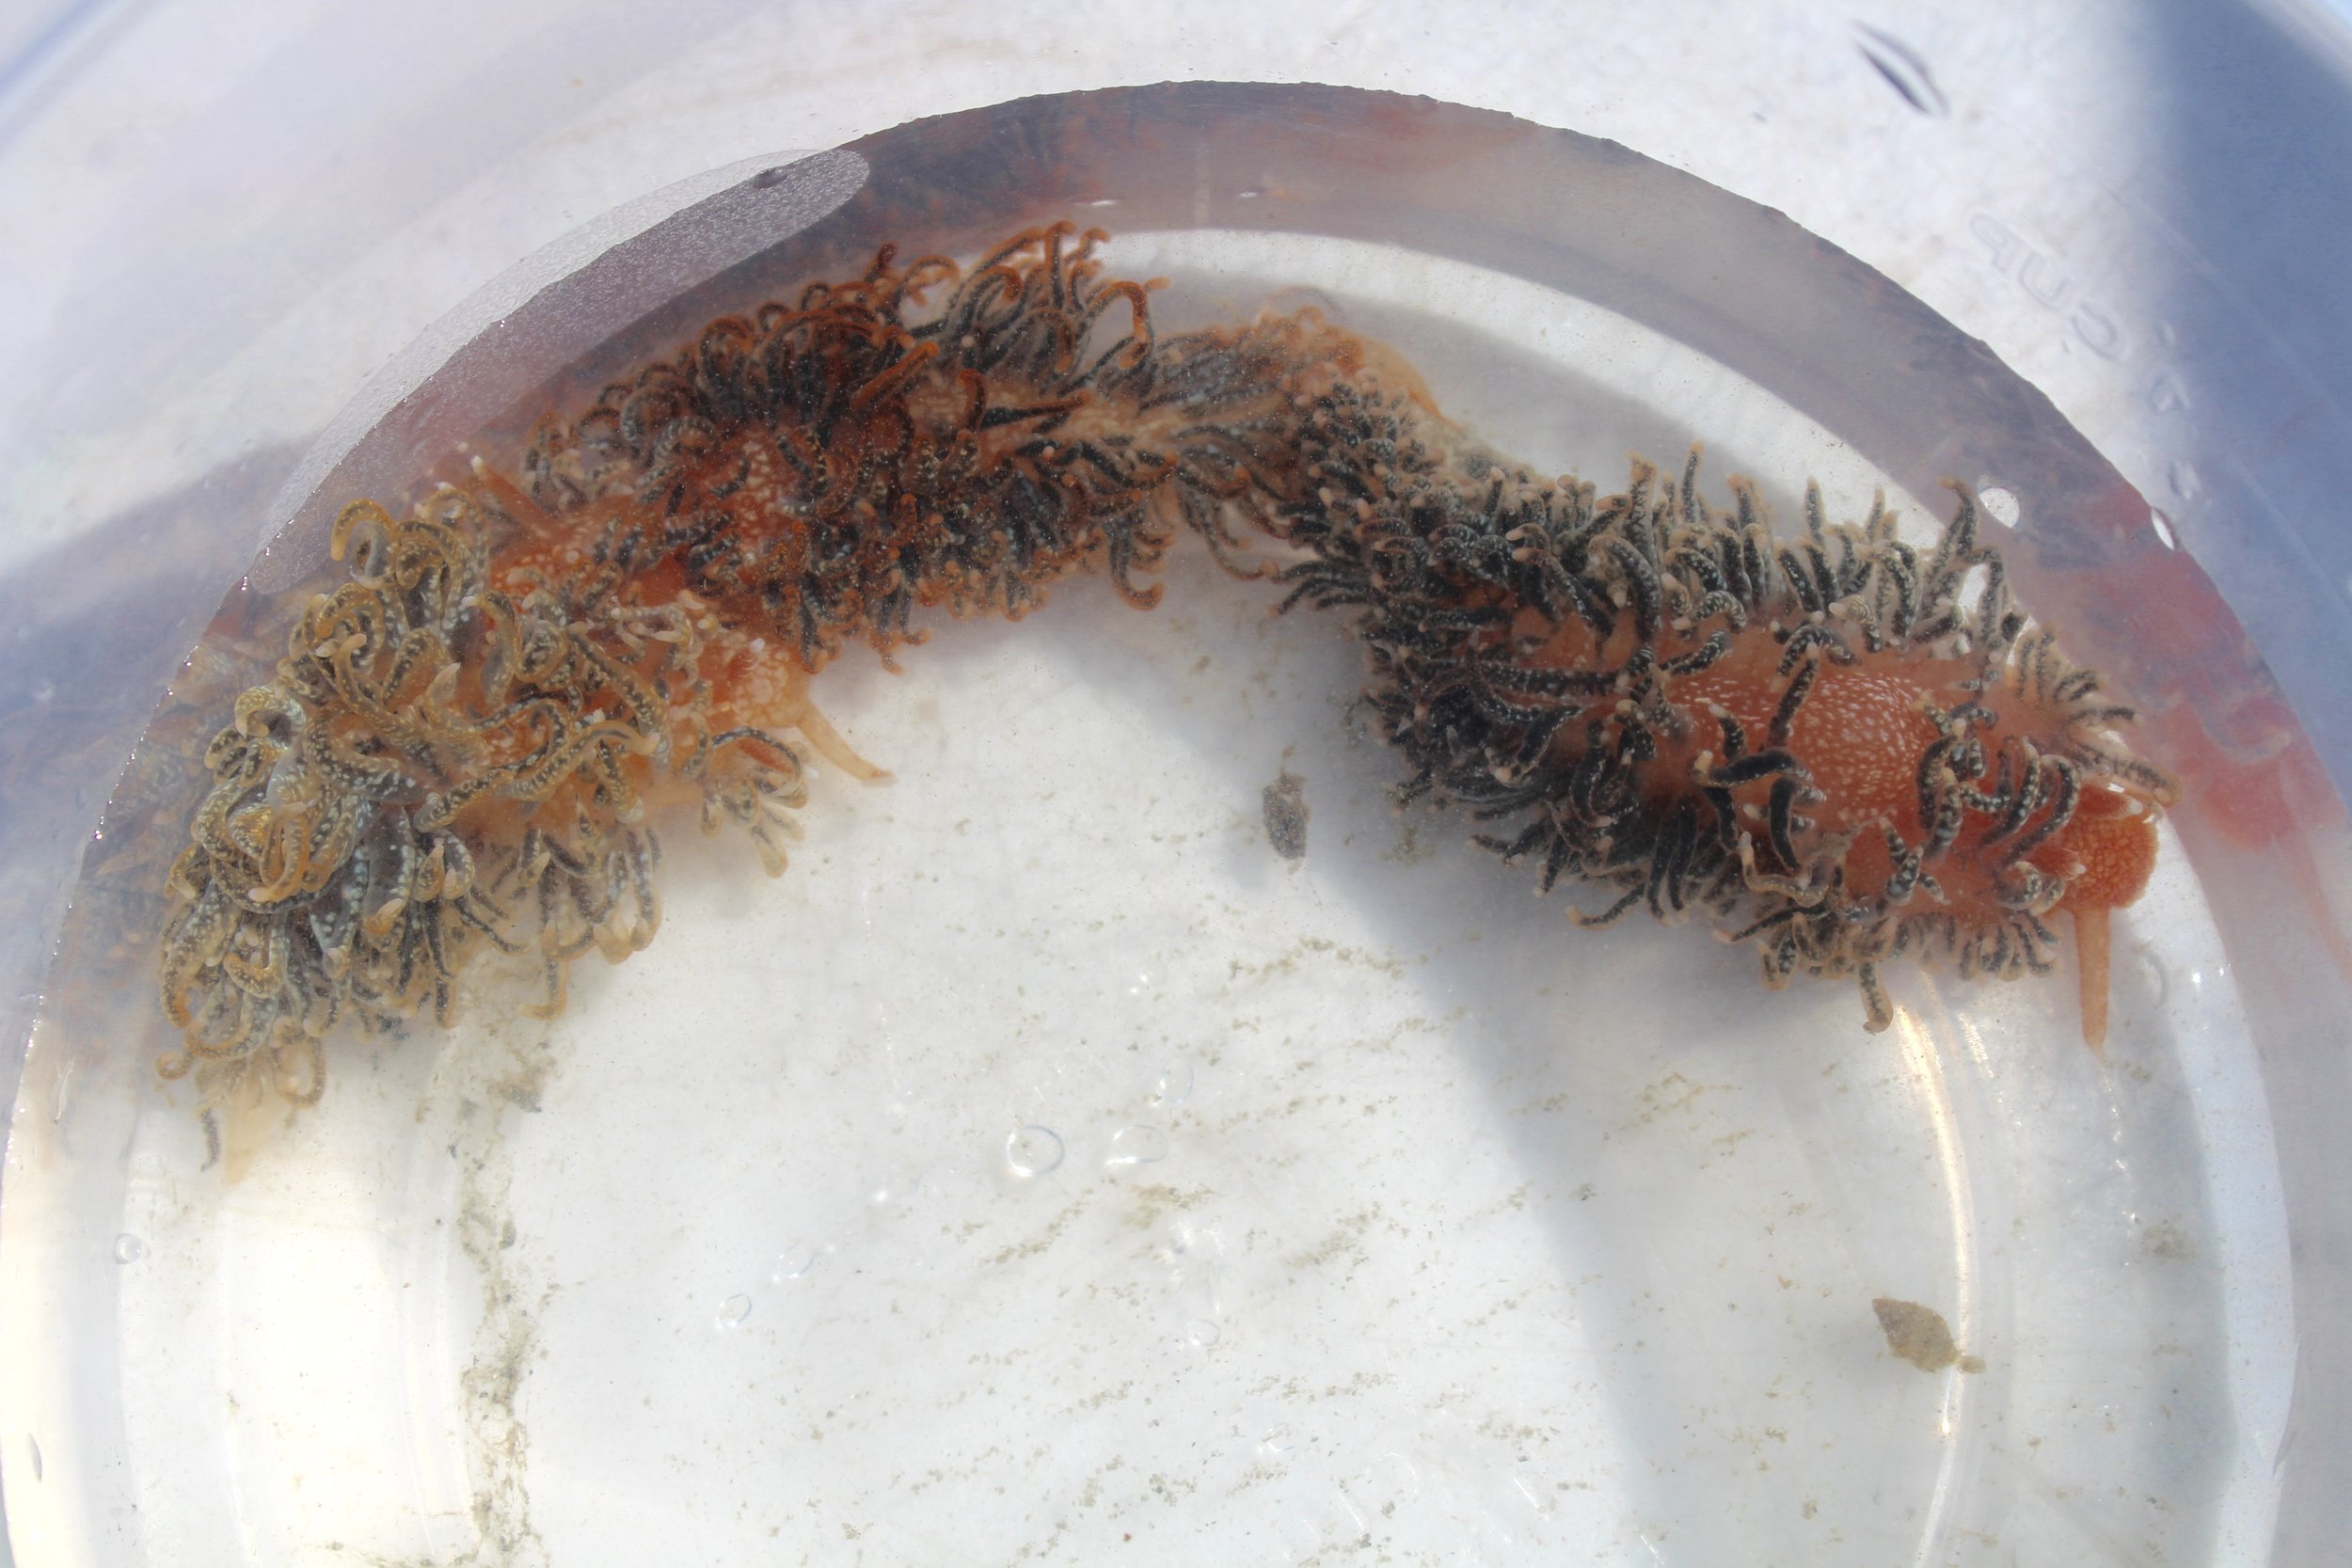 Three  Spurilla braziliana  nudibranchs that SCDNR biologists found on a crab pot during an inshore shark survey. (Photo: E. Weeks/SCDNR)